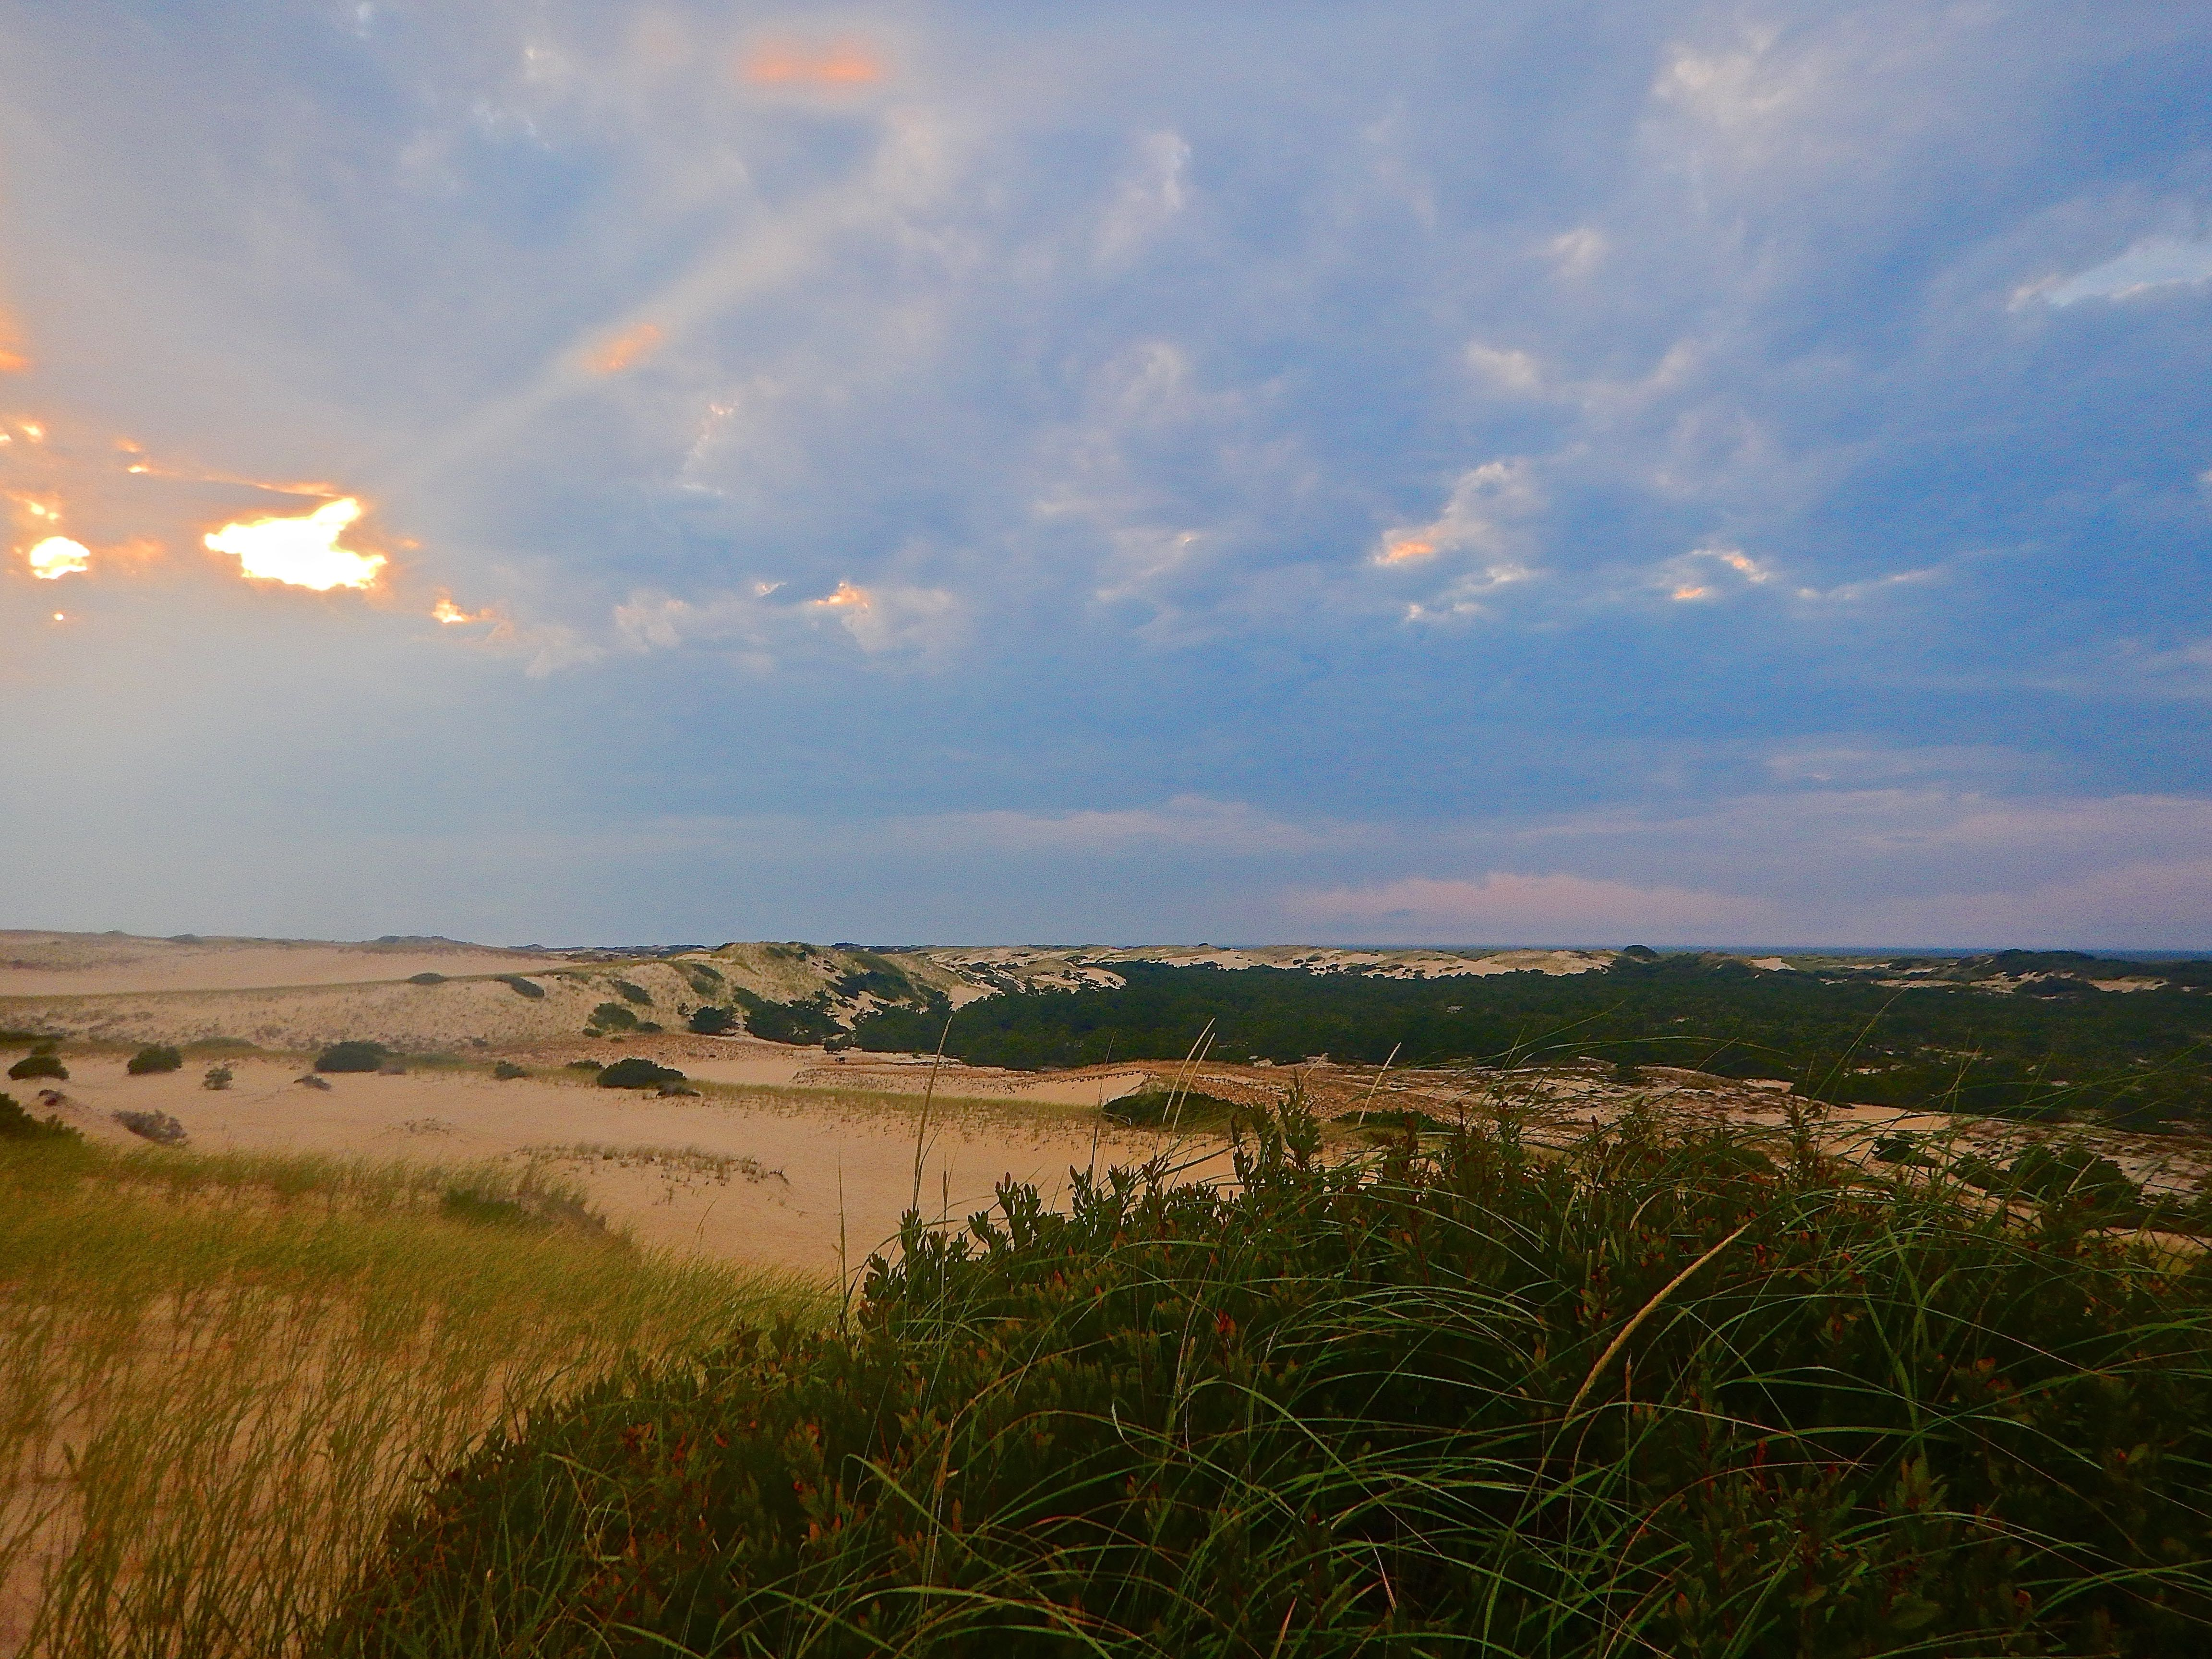 Caption: Sunset Over the Province Lands, Cape Cod, MA, Credit: Brian Aust